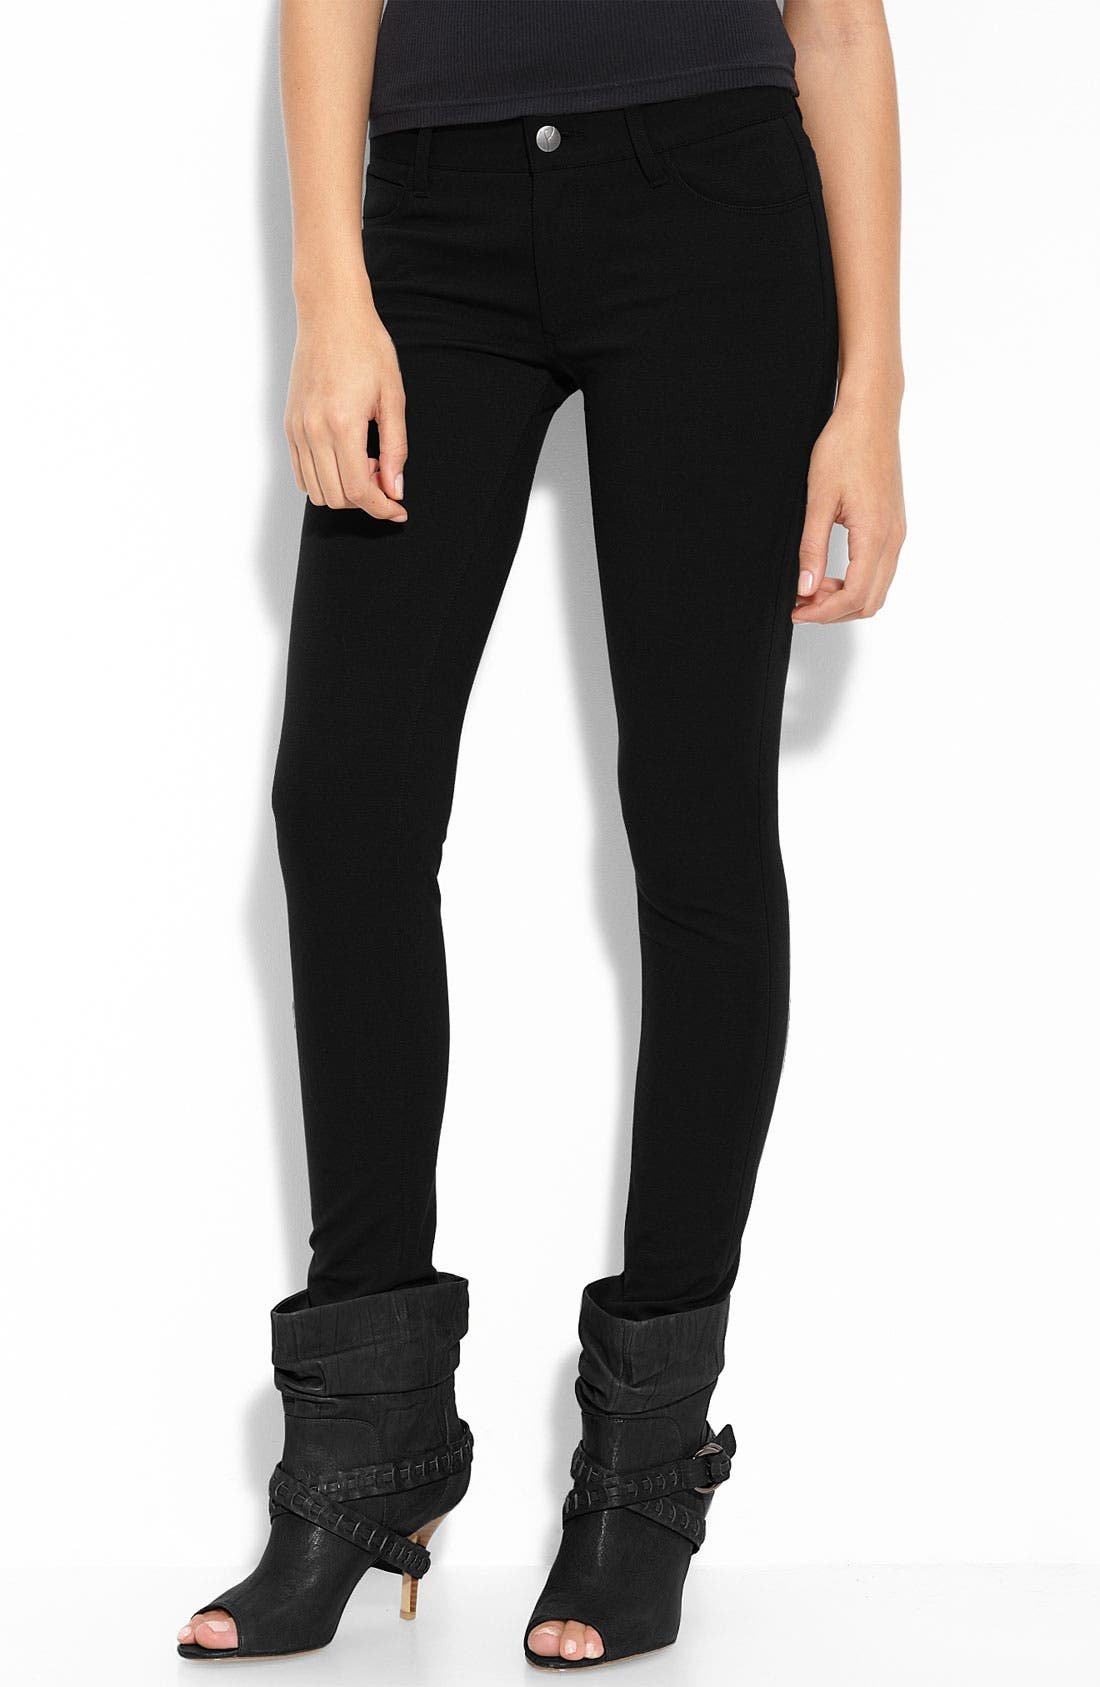 Alternate Image 1 Selected - Paige Denim Ponte Knit Leggings